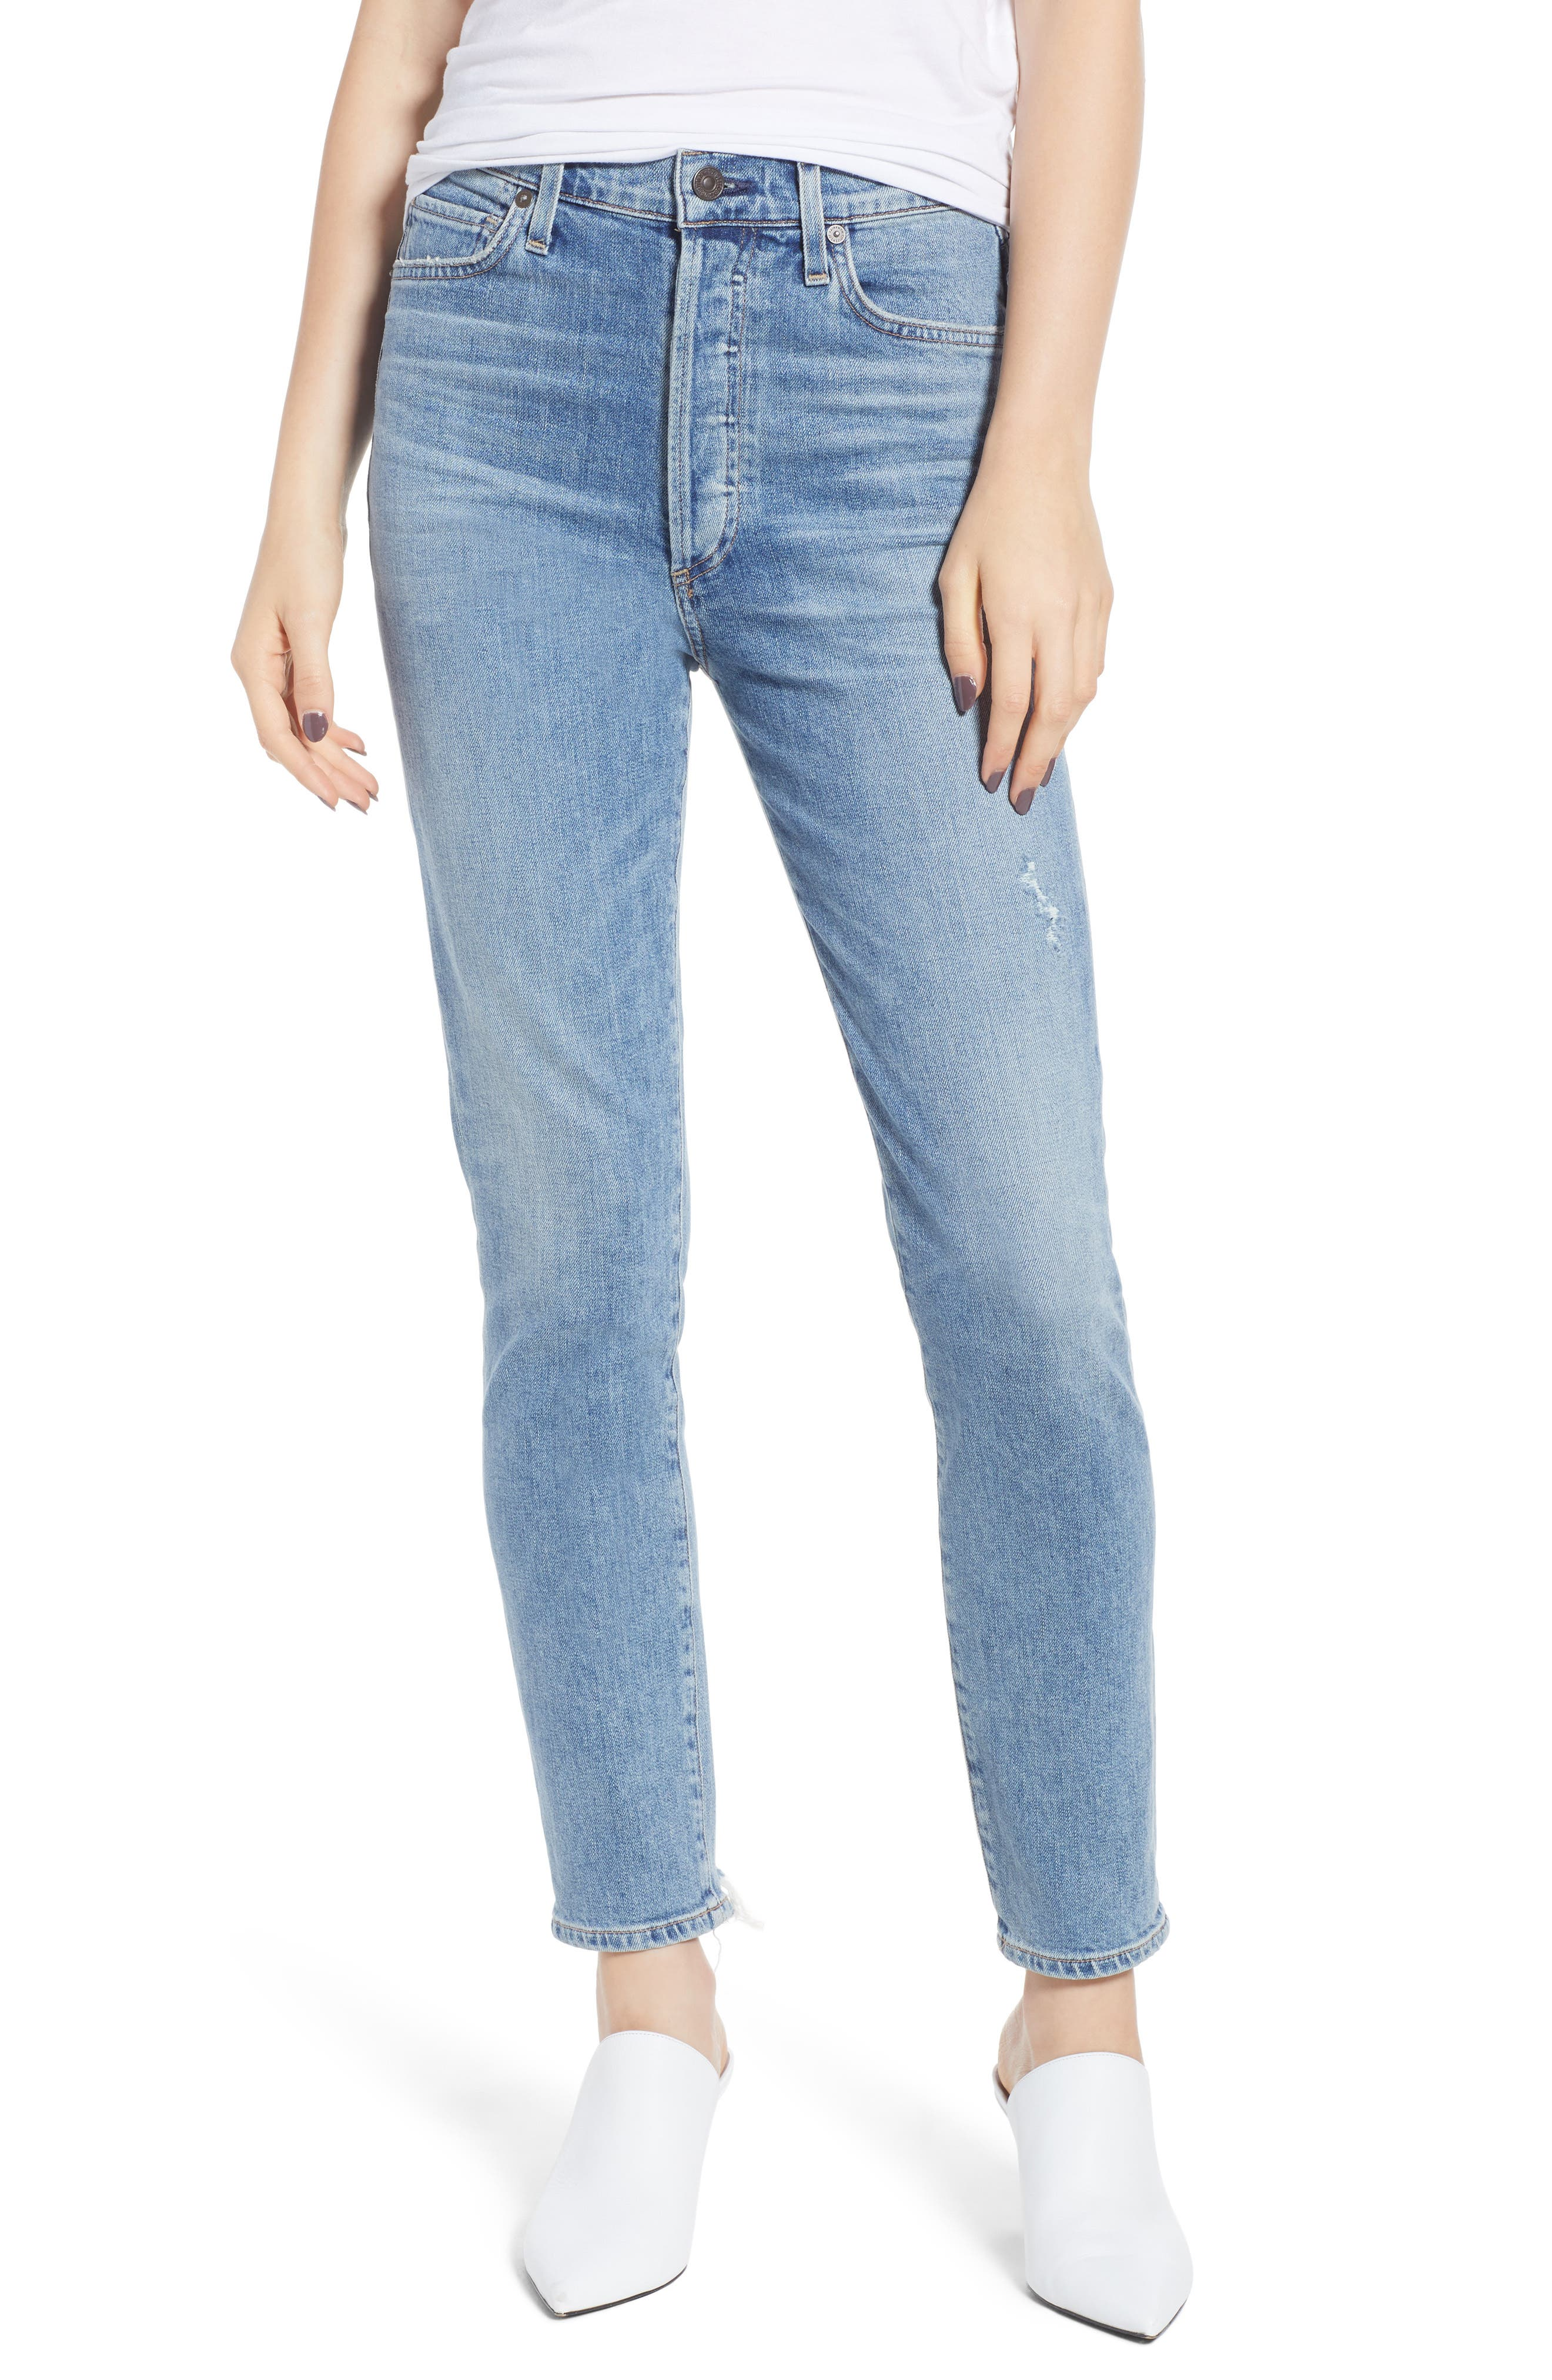 CITIZENS OF HUMANITY Olivia High Waist Ankle Slim Jeans, Main, color, BACK ROAD